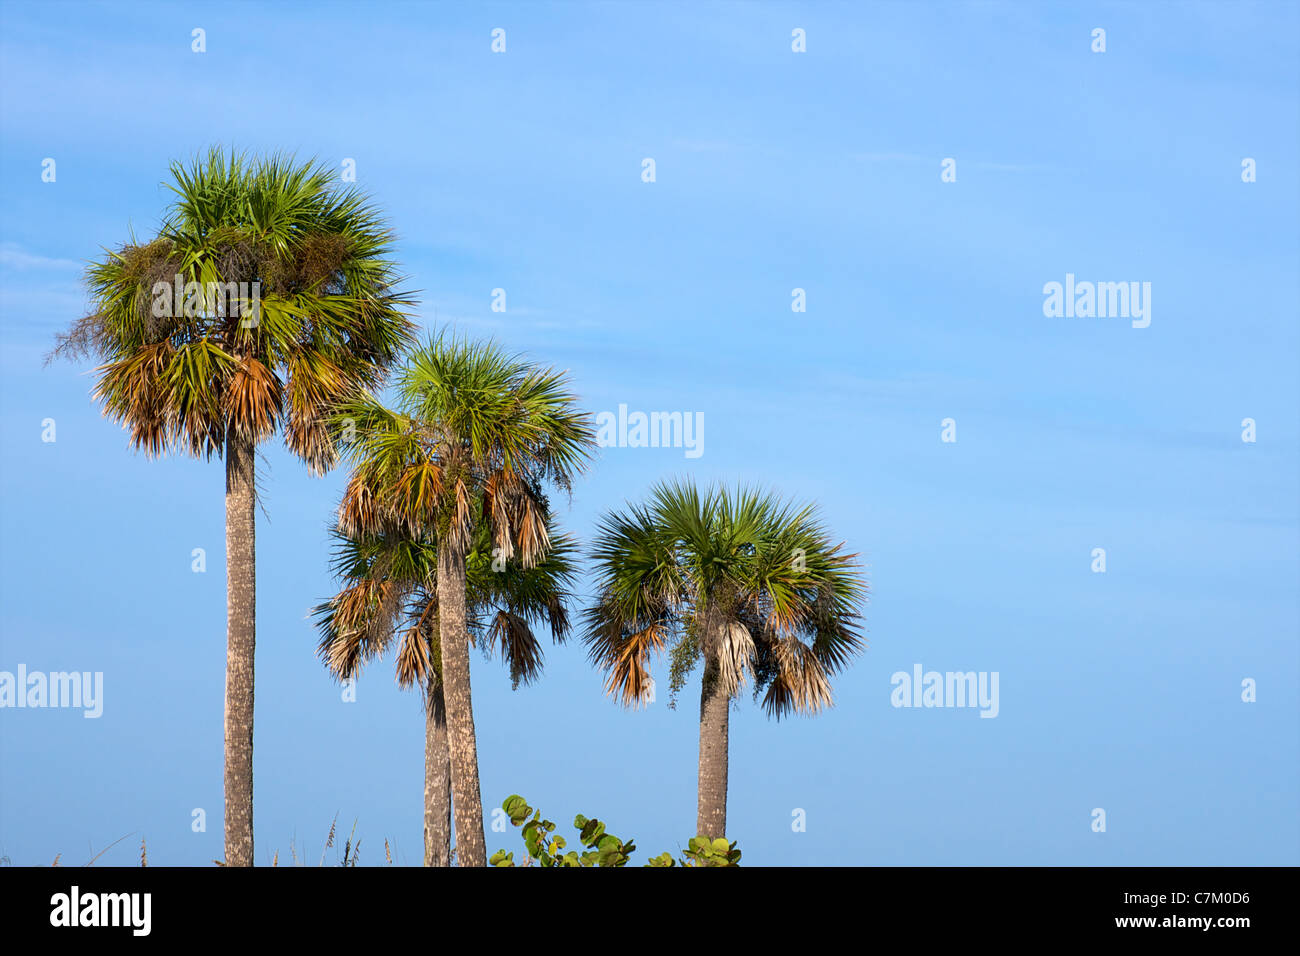 Looking Up At Tall Palm Trees In Florida With Tall Sea Grass In The